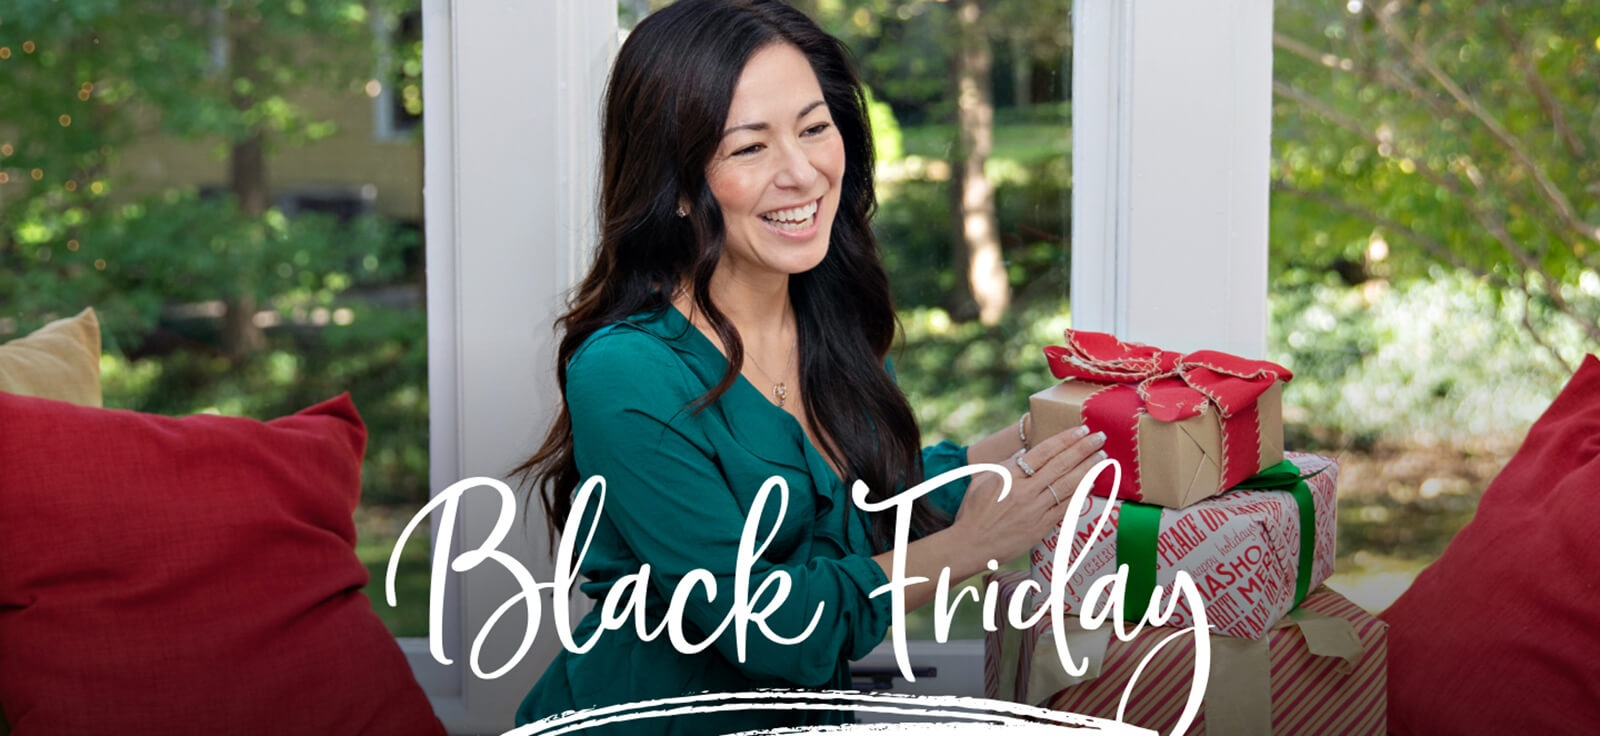 Black Friday: Woman wearing jewelry holding Christmas presents